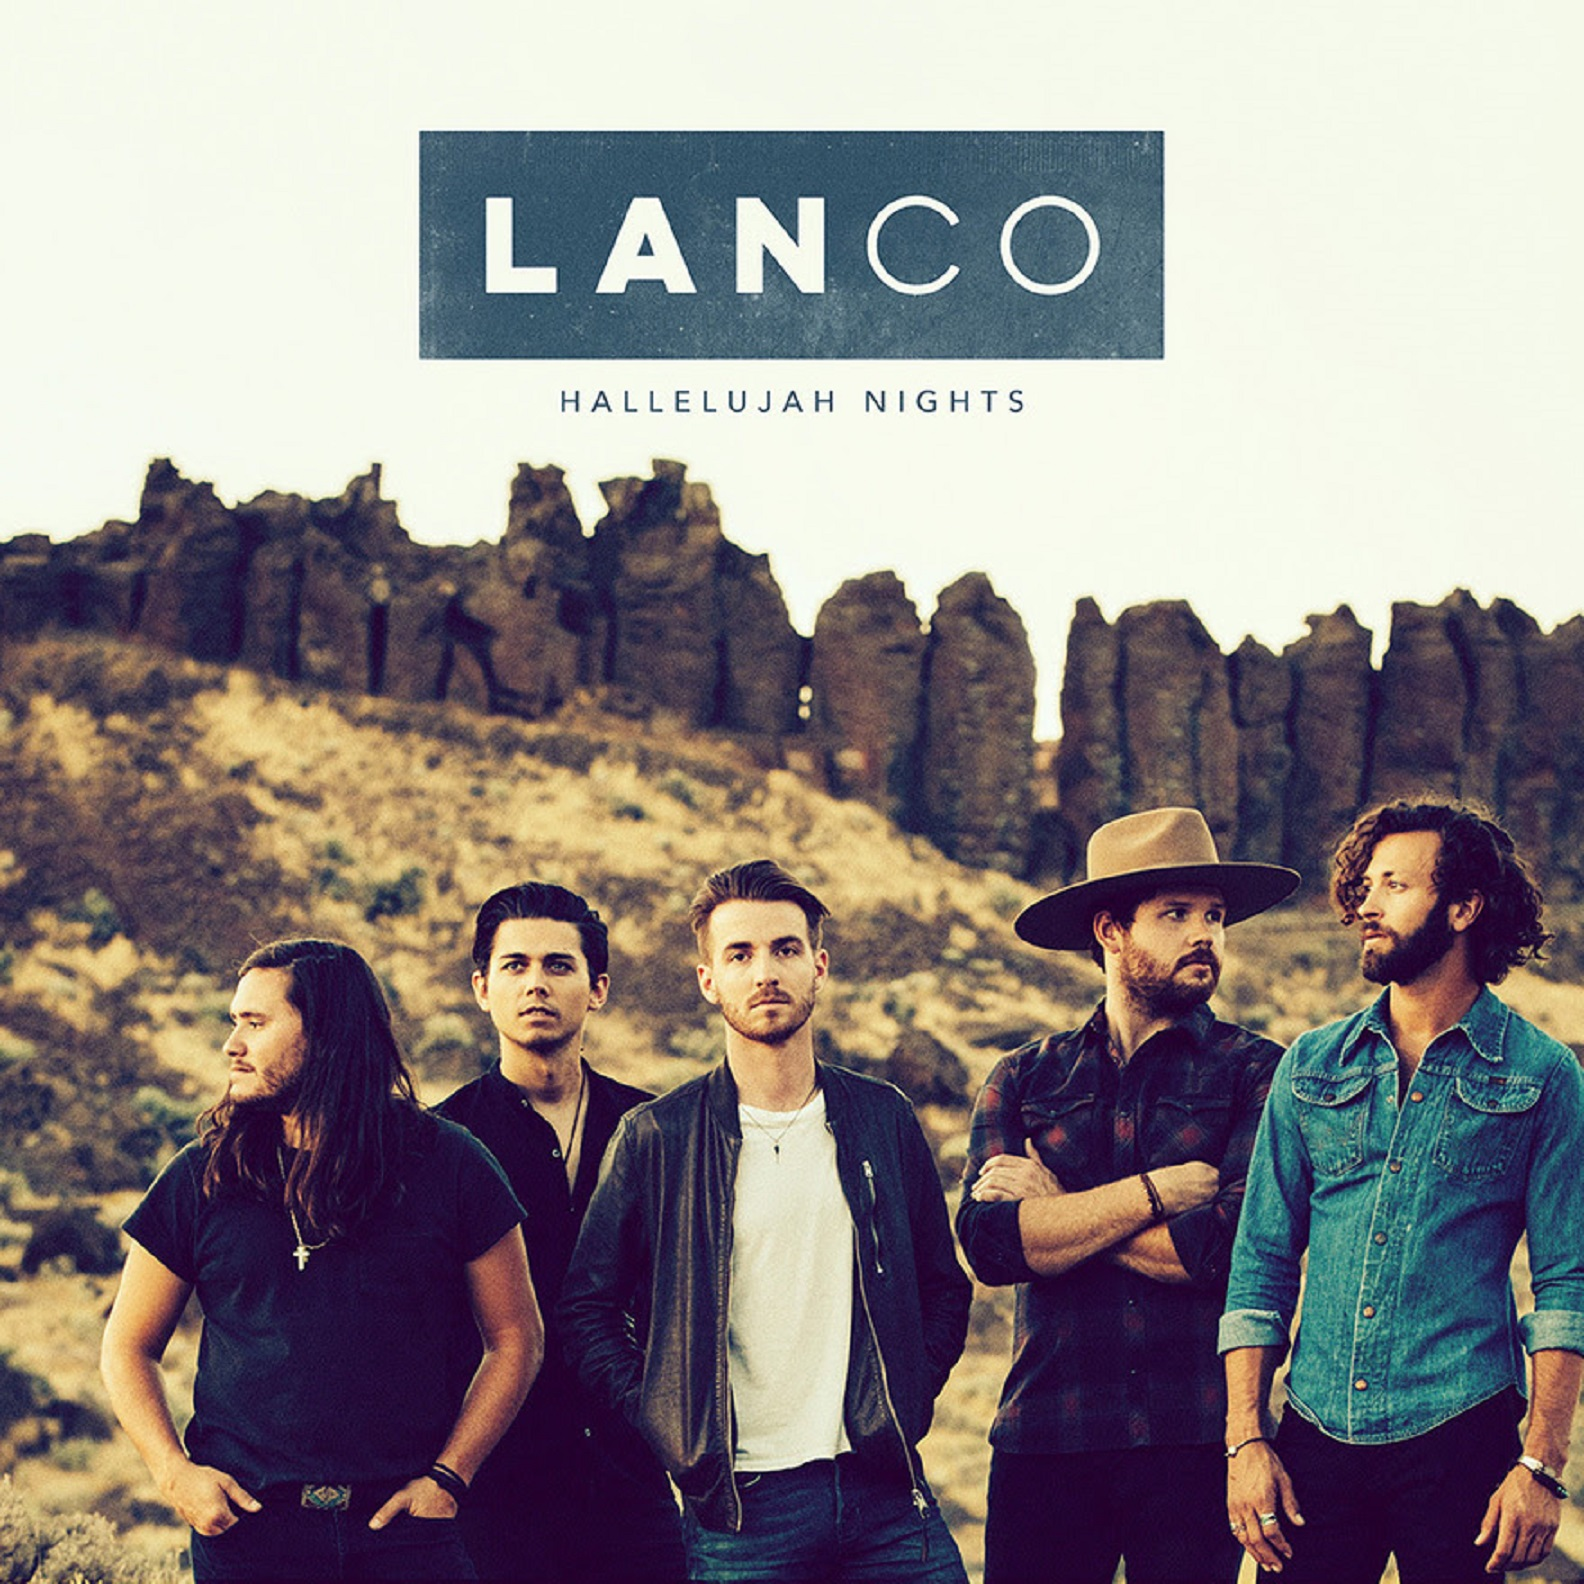 LANCO INTRODUCES DEBUT ALBUM HALLELUJAH NIGHTS